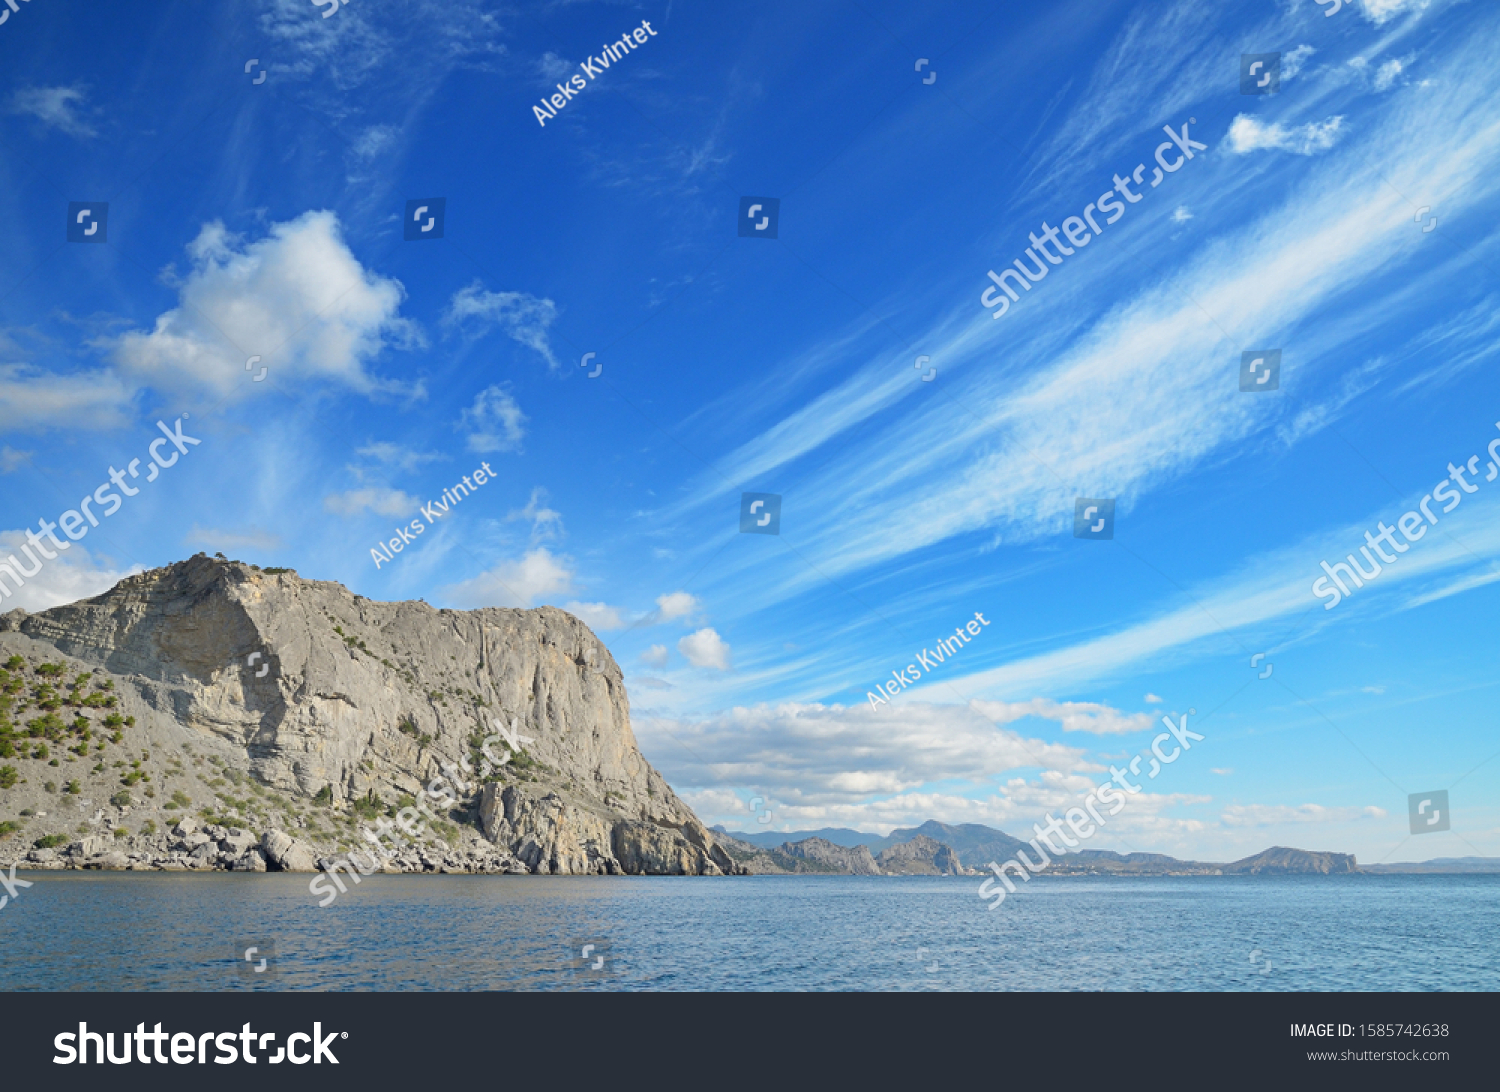 View of the steep rocky slope of Mount Eagle (Koba-Kaya) against a bright blue sky and white clouds. Coast of the Black Sea, eastern Crimea, New World.